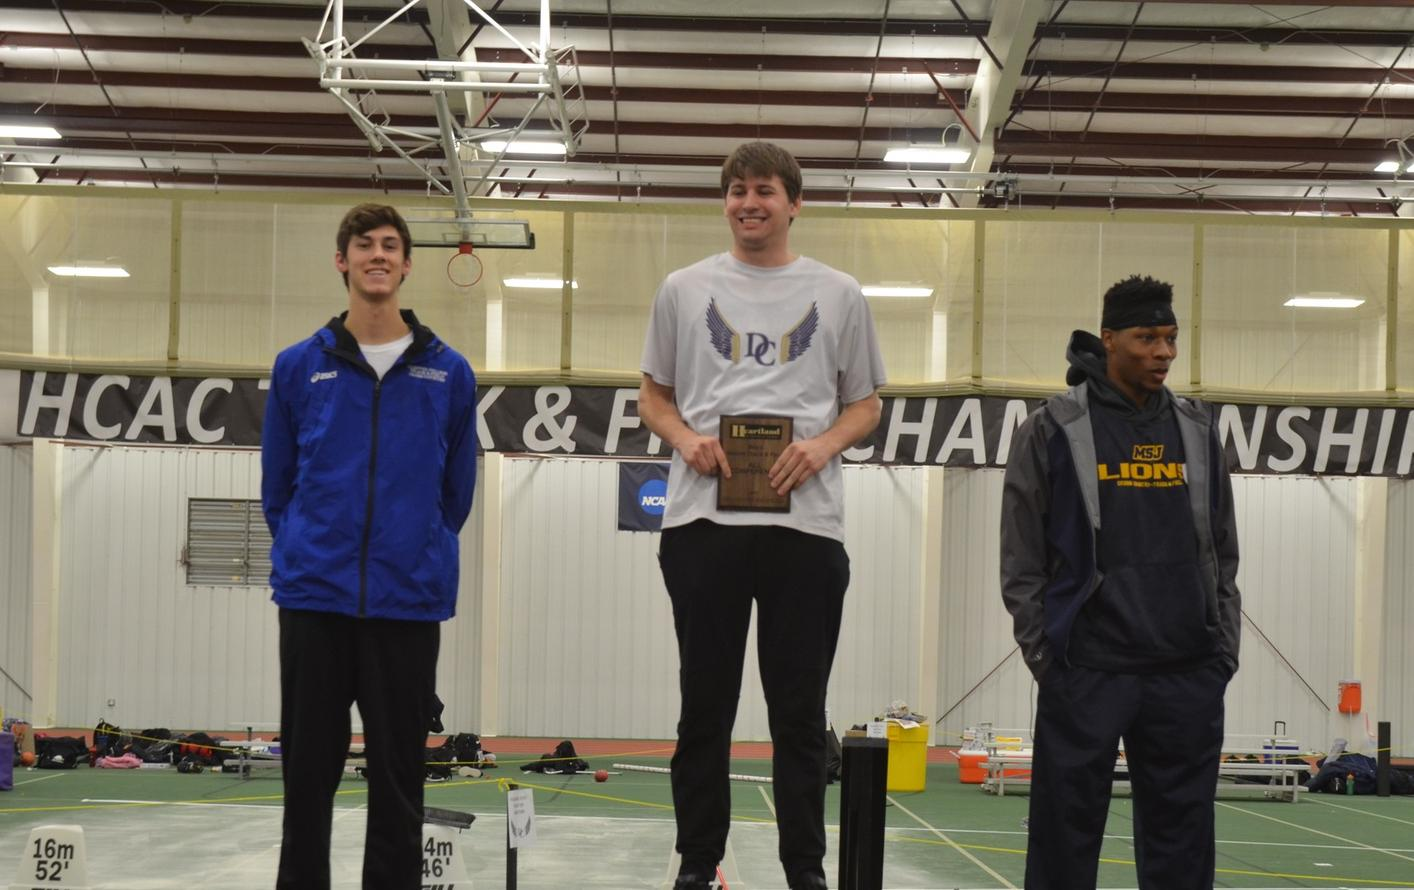 Jackson Leads DC at the HCAC Indoor Championships